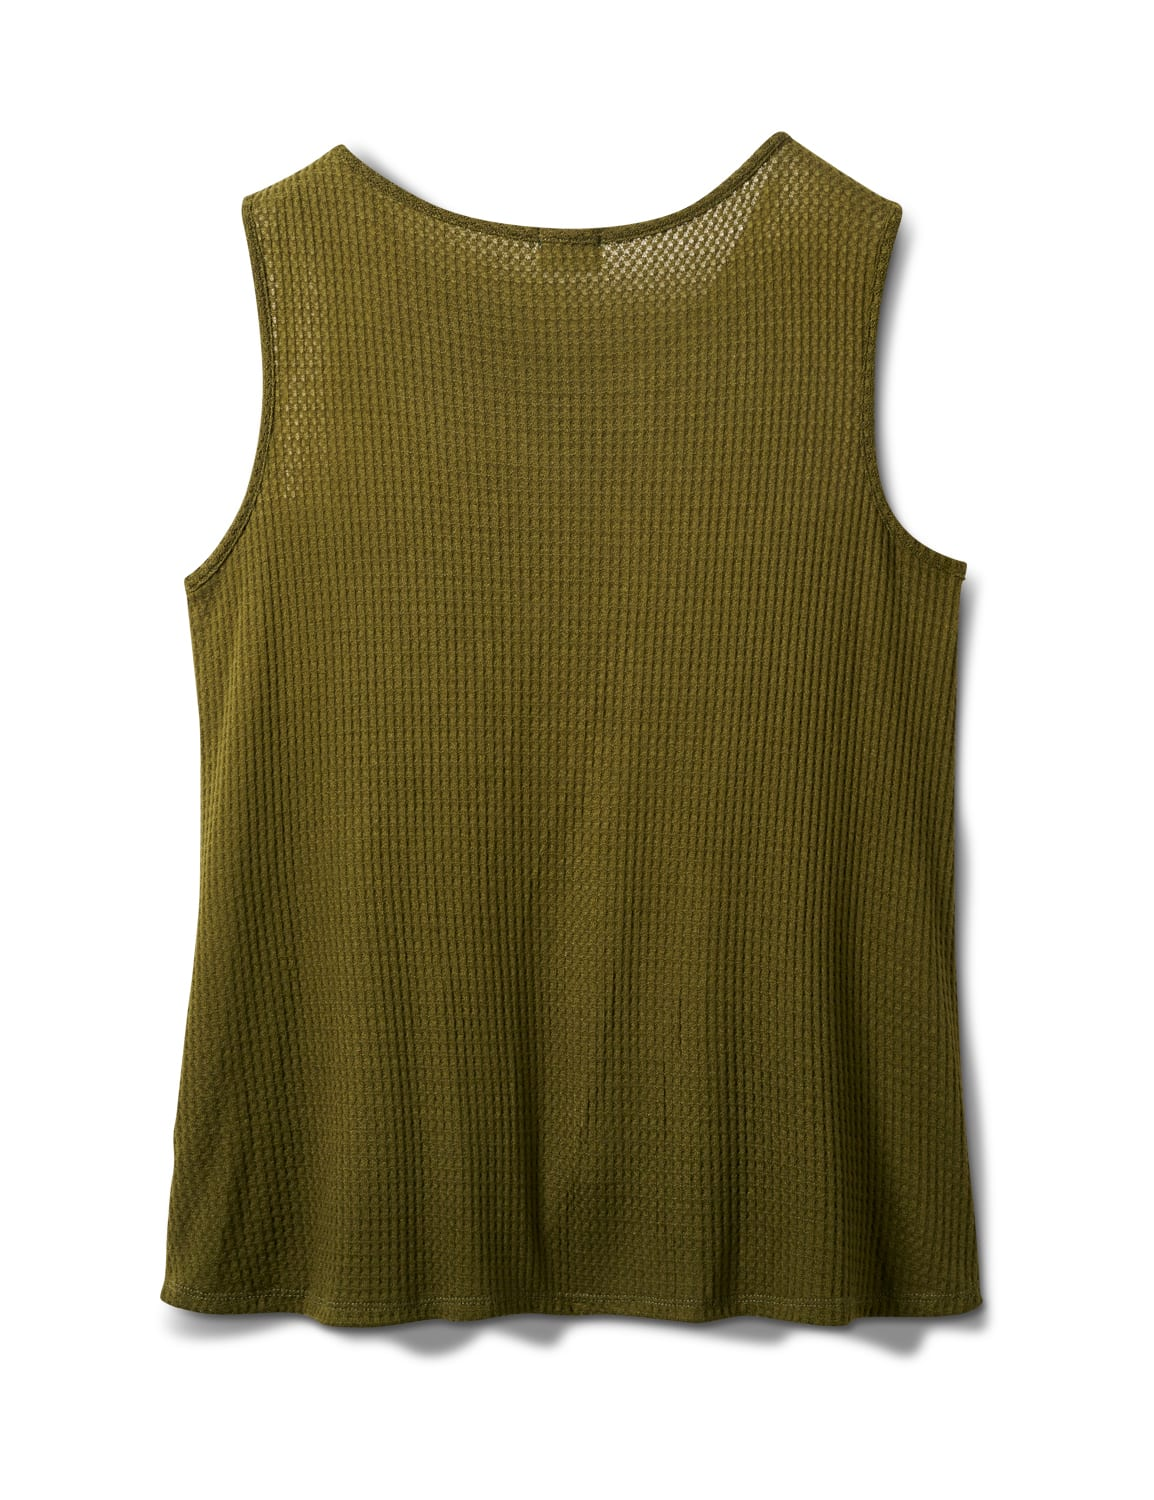 Mixed Camo Knot Front Knit Top - Plus - Olive - Back